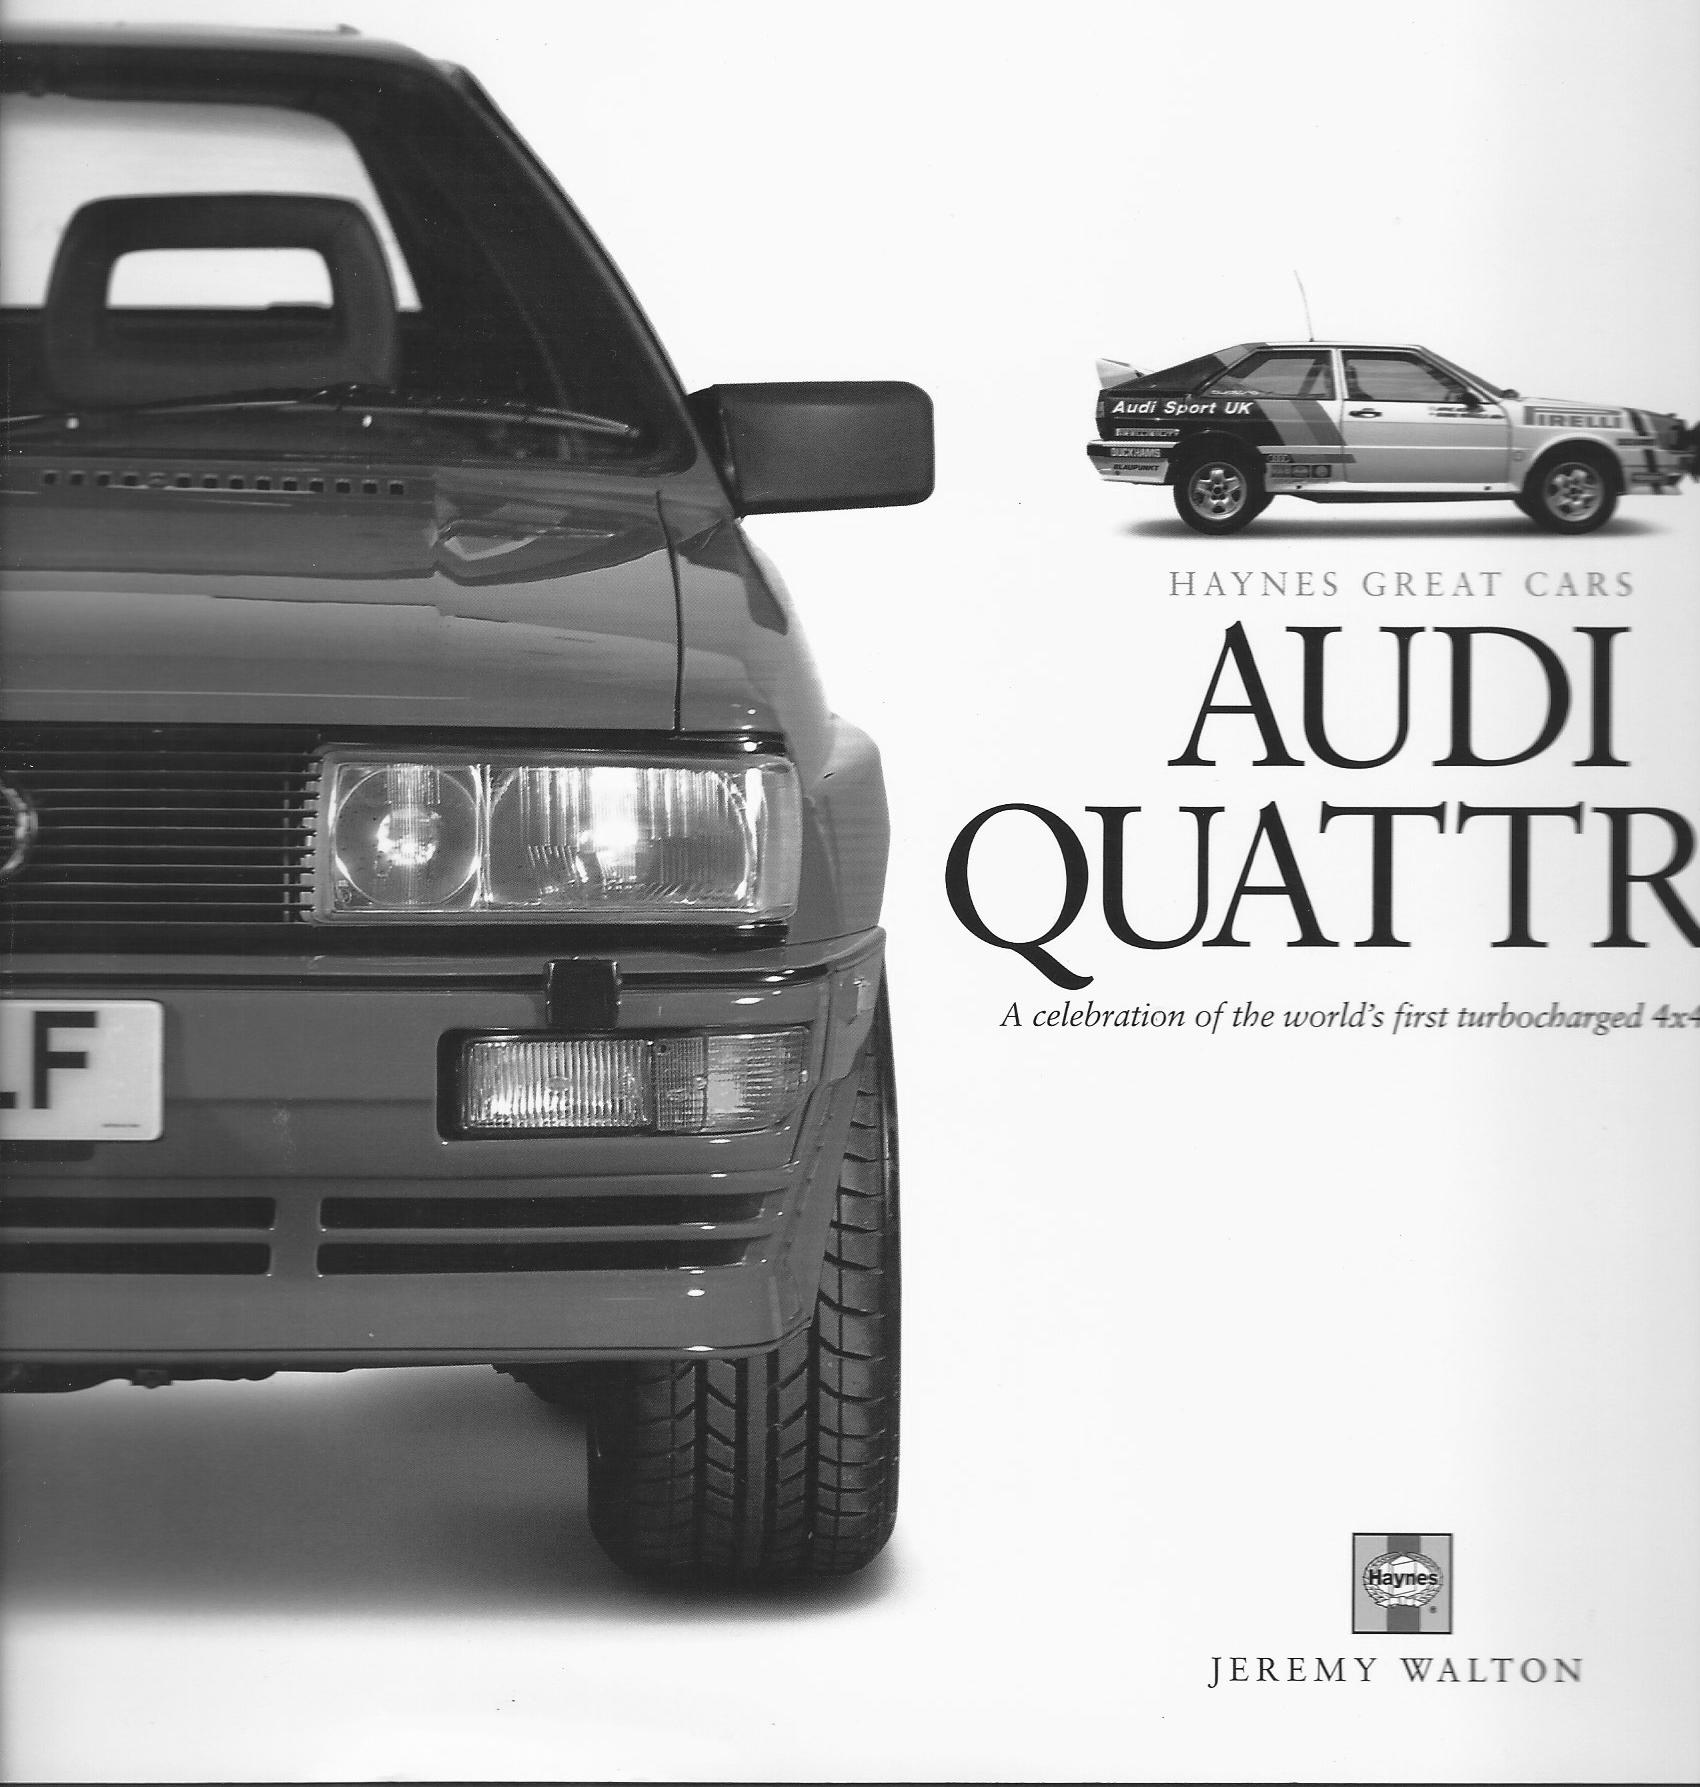 Image for Audi Quattro: A Celebration of the World's First 4x4 coupe (Haynes Great Cars)